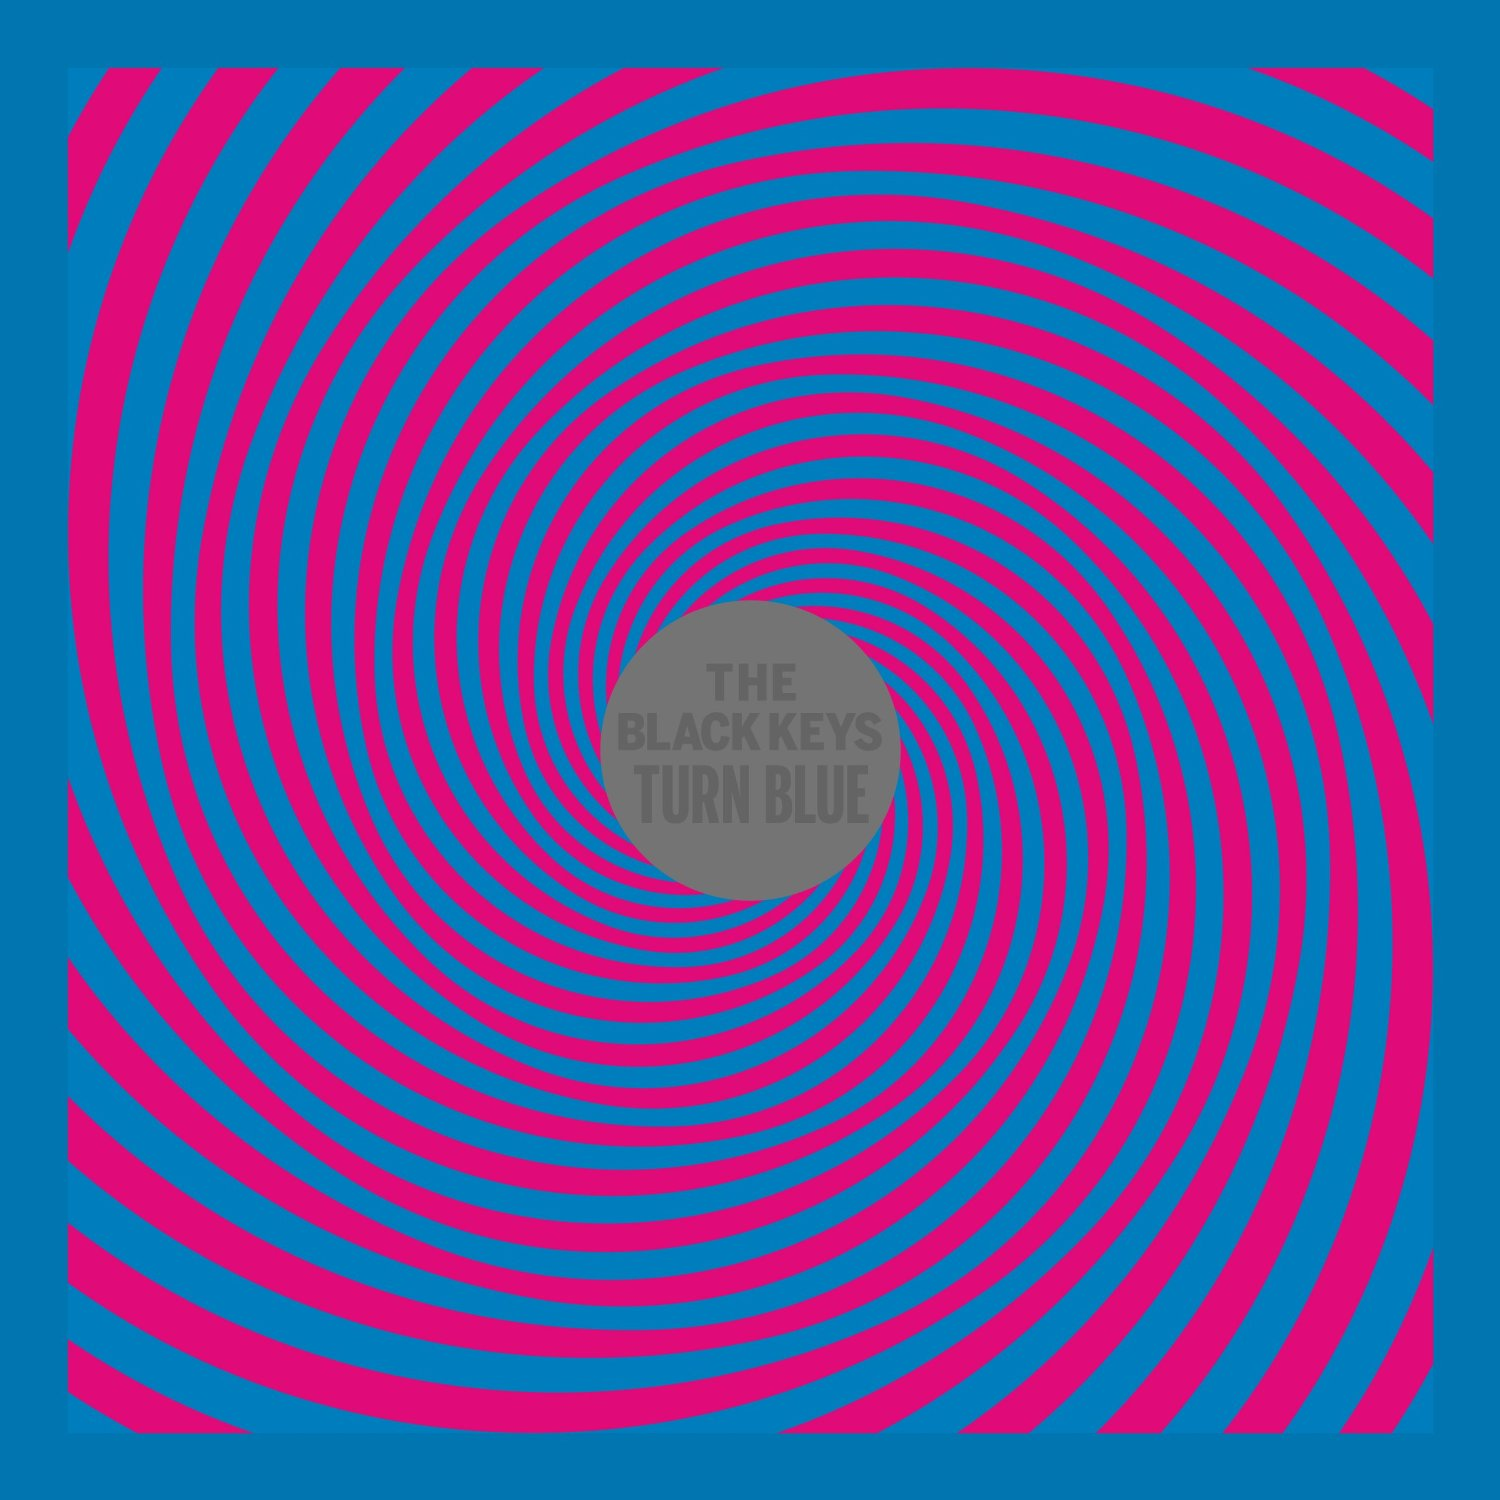 The Black Keys Superbly Tackle Divorce On Superb 'Turn Blue'